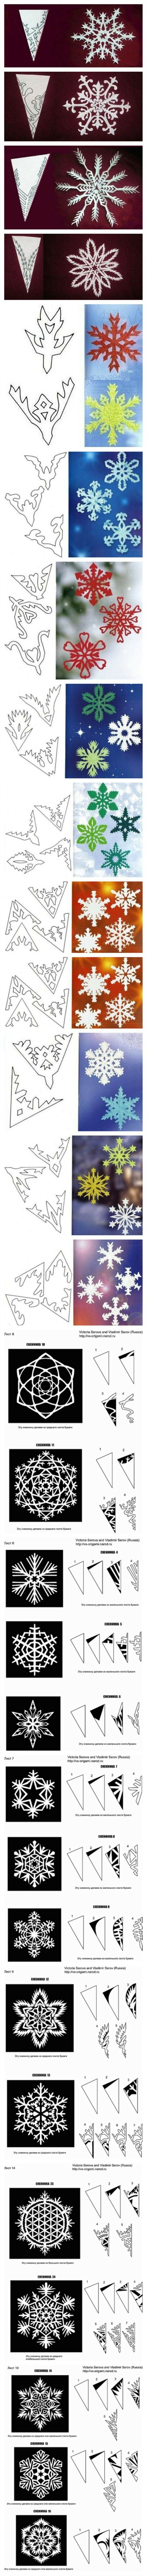 snowflakes....Christmas craft